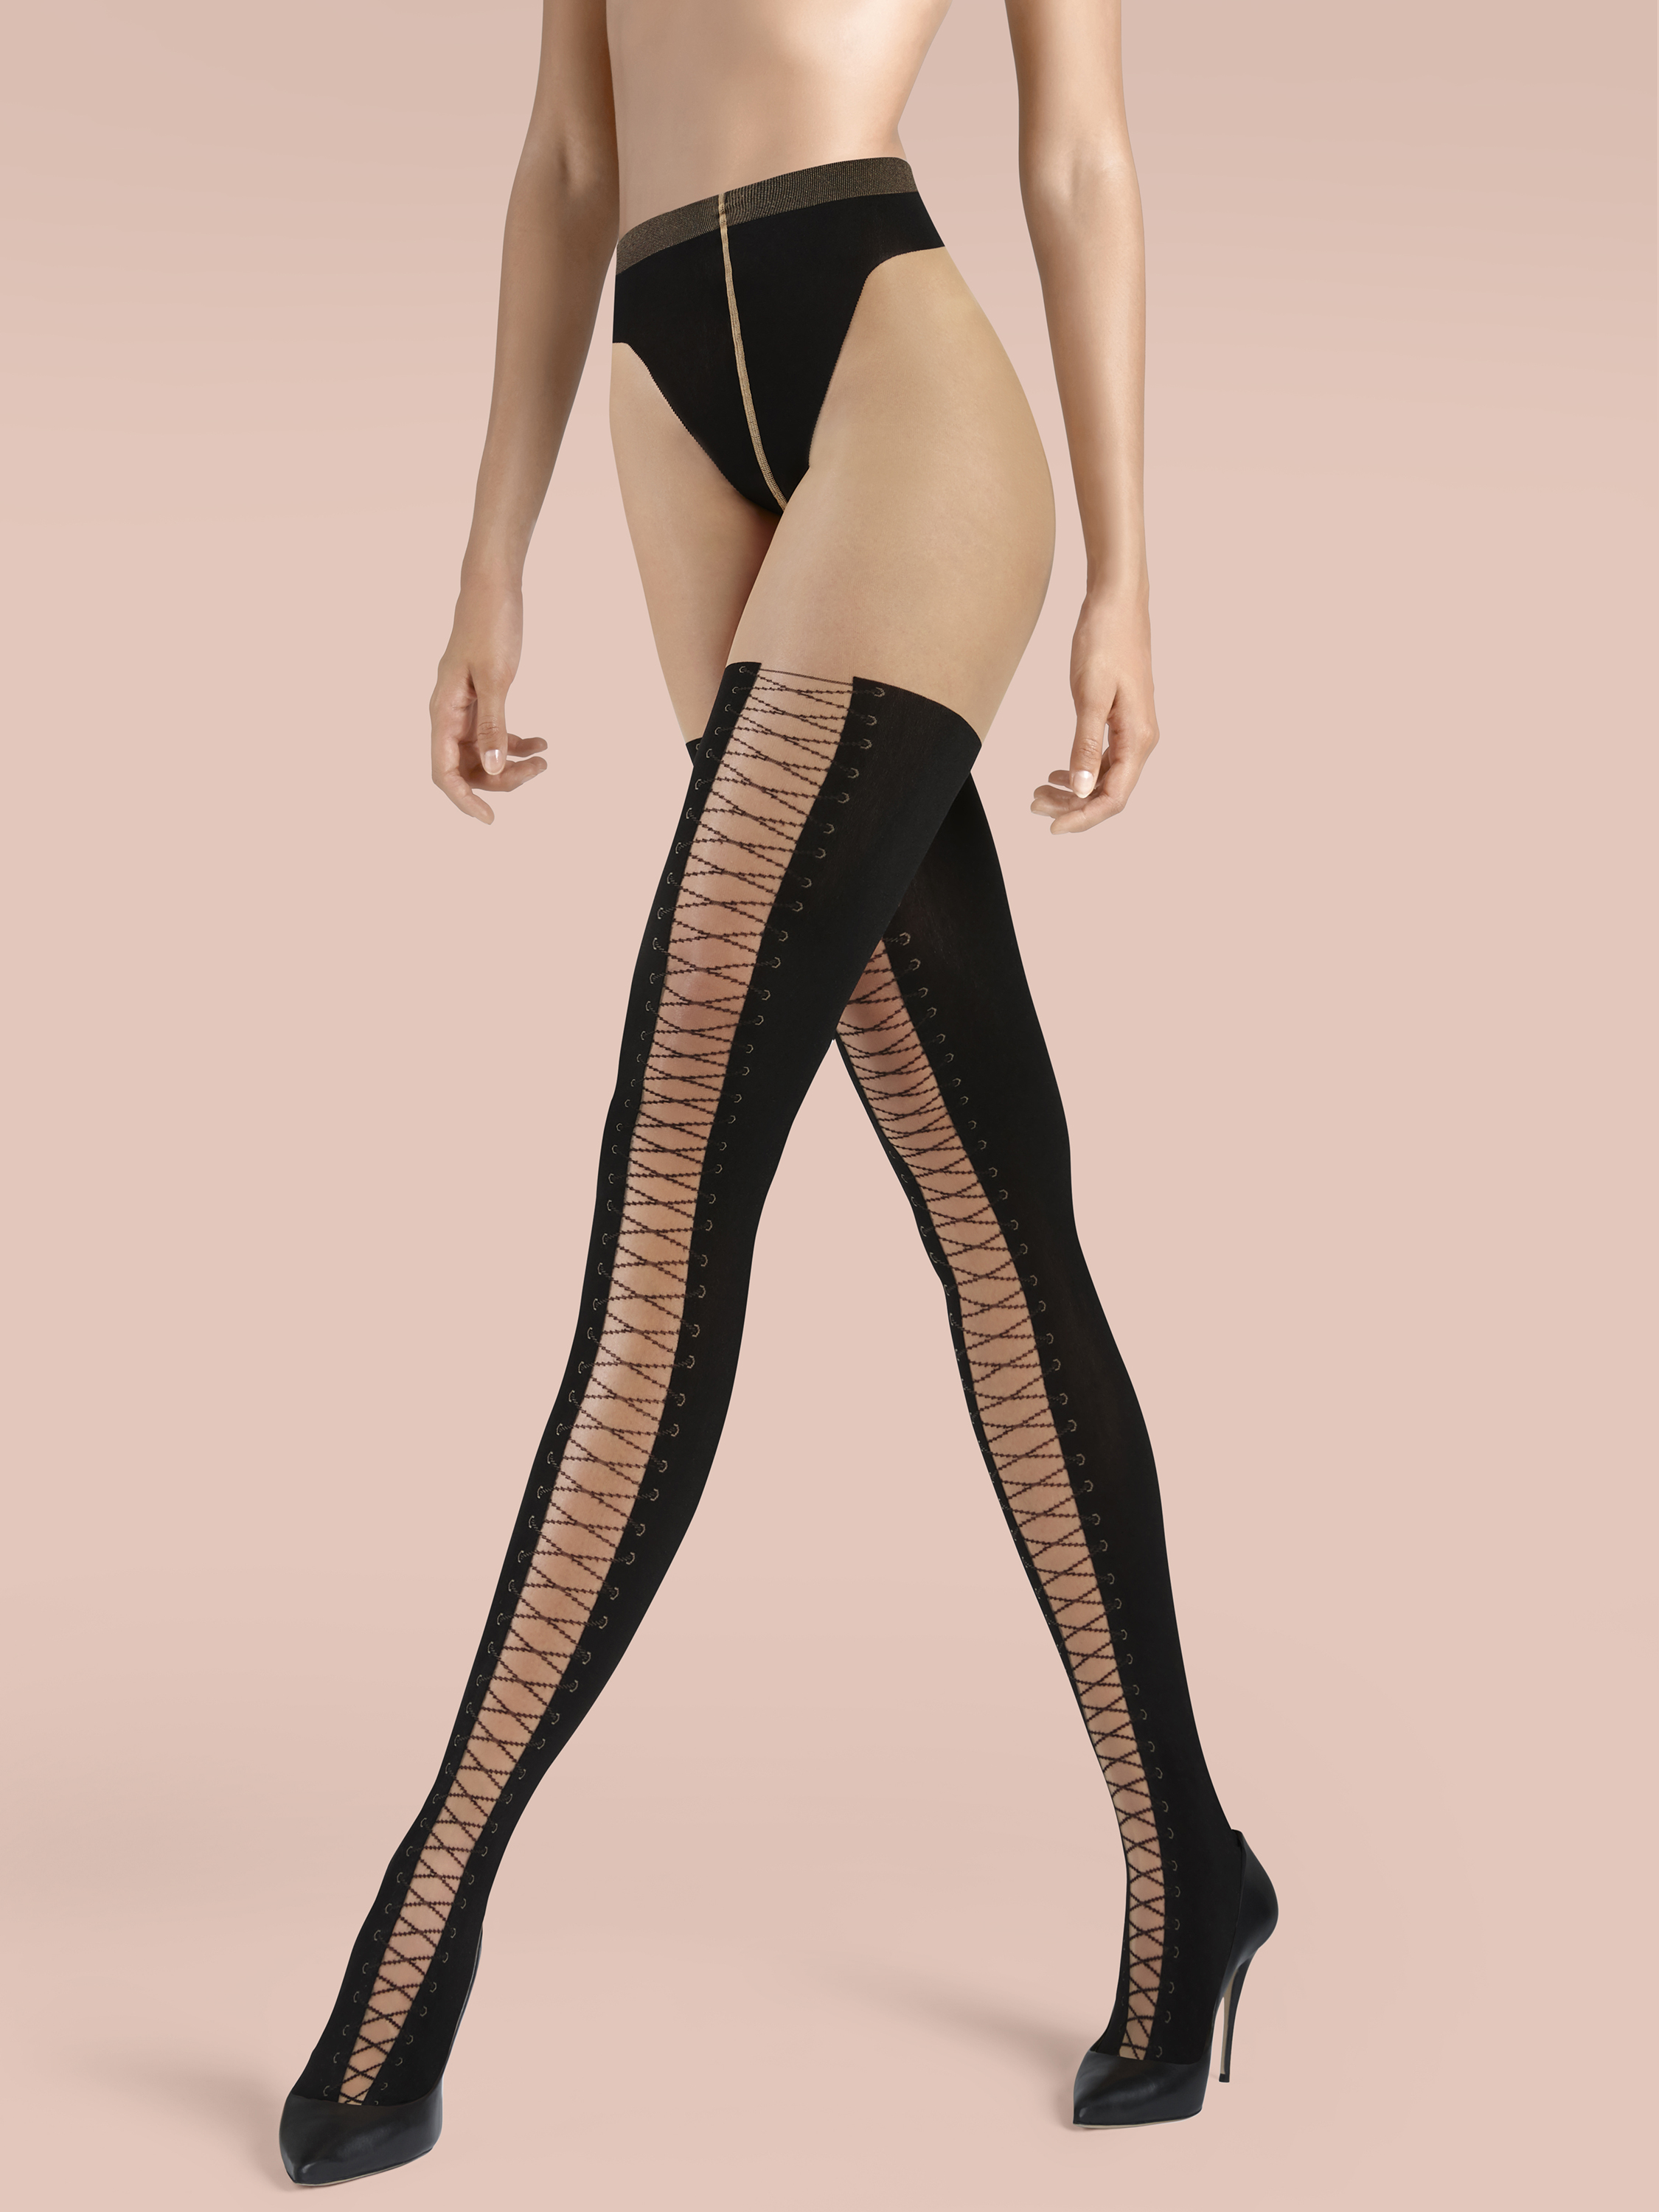 c636571e3681a Mock over the knee tights | Tightsstore US ✅